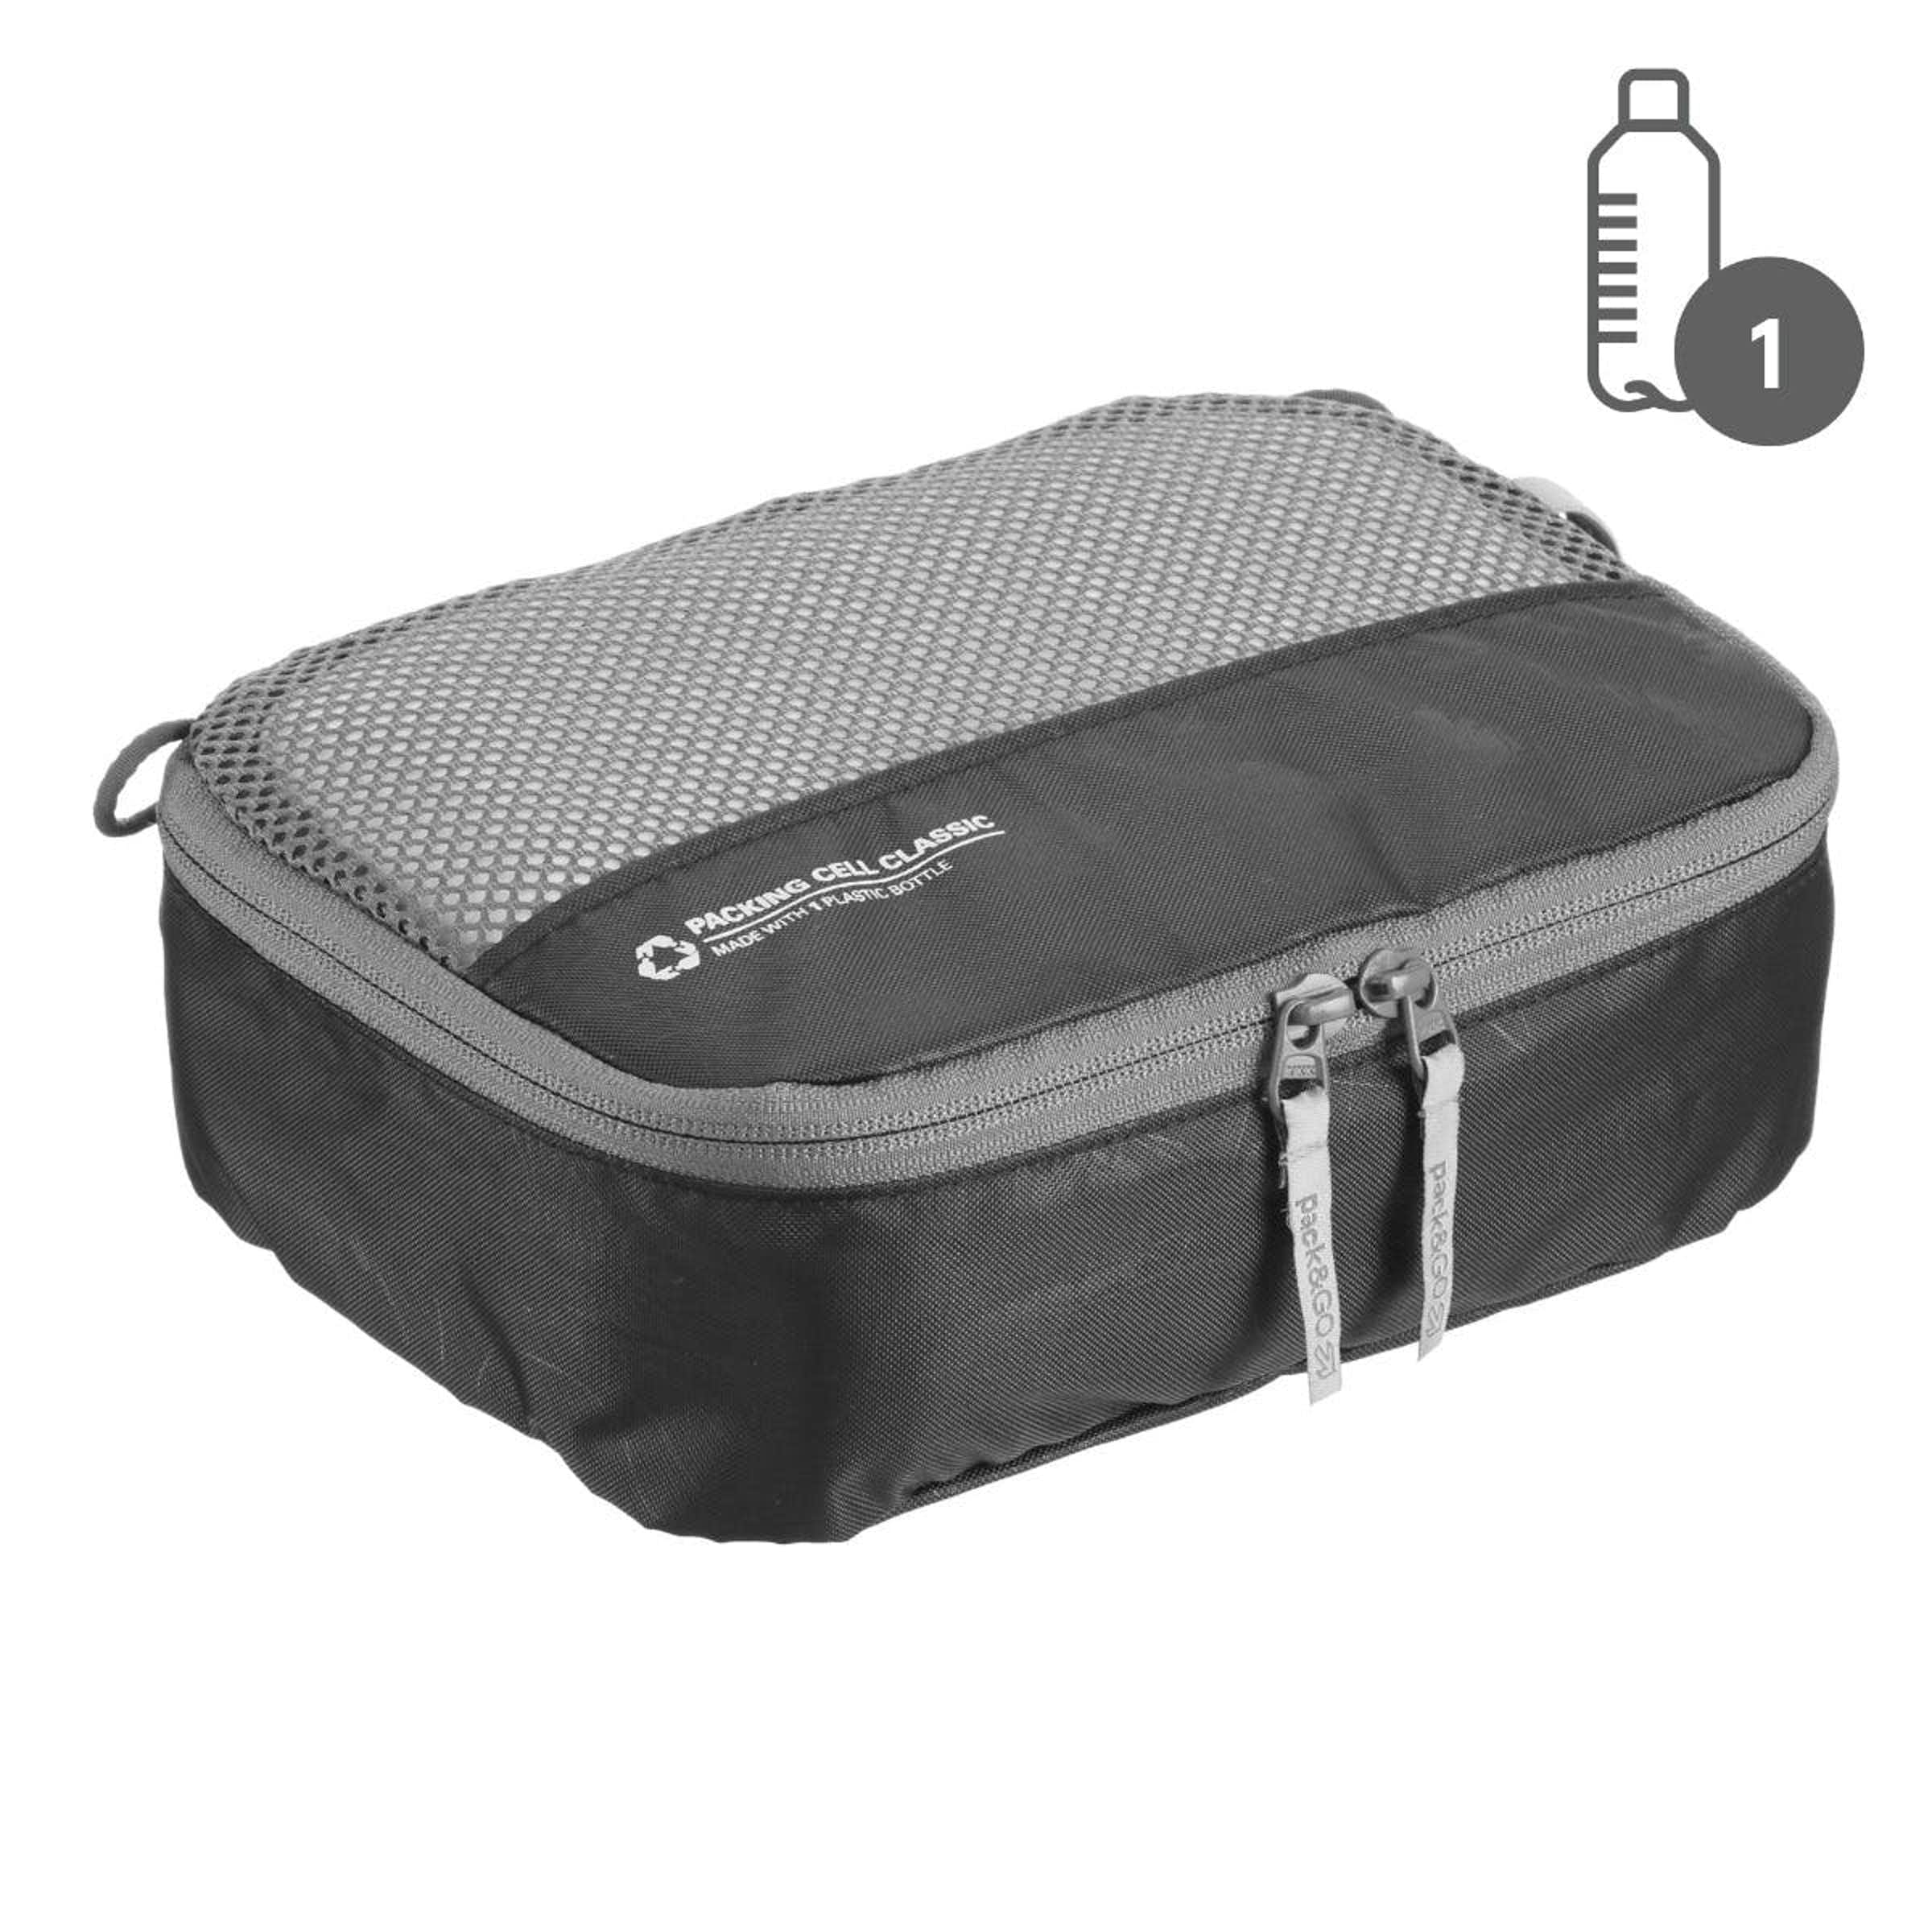 0fefdaa917a7 Packing Cubes & Cells | Travel Luggage Organizers for Suitcases | UK